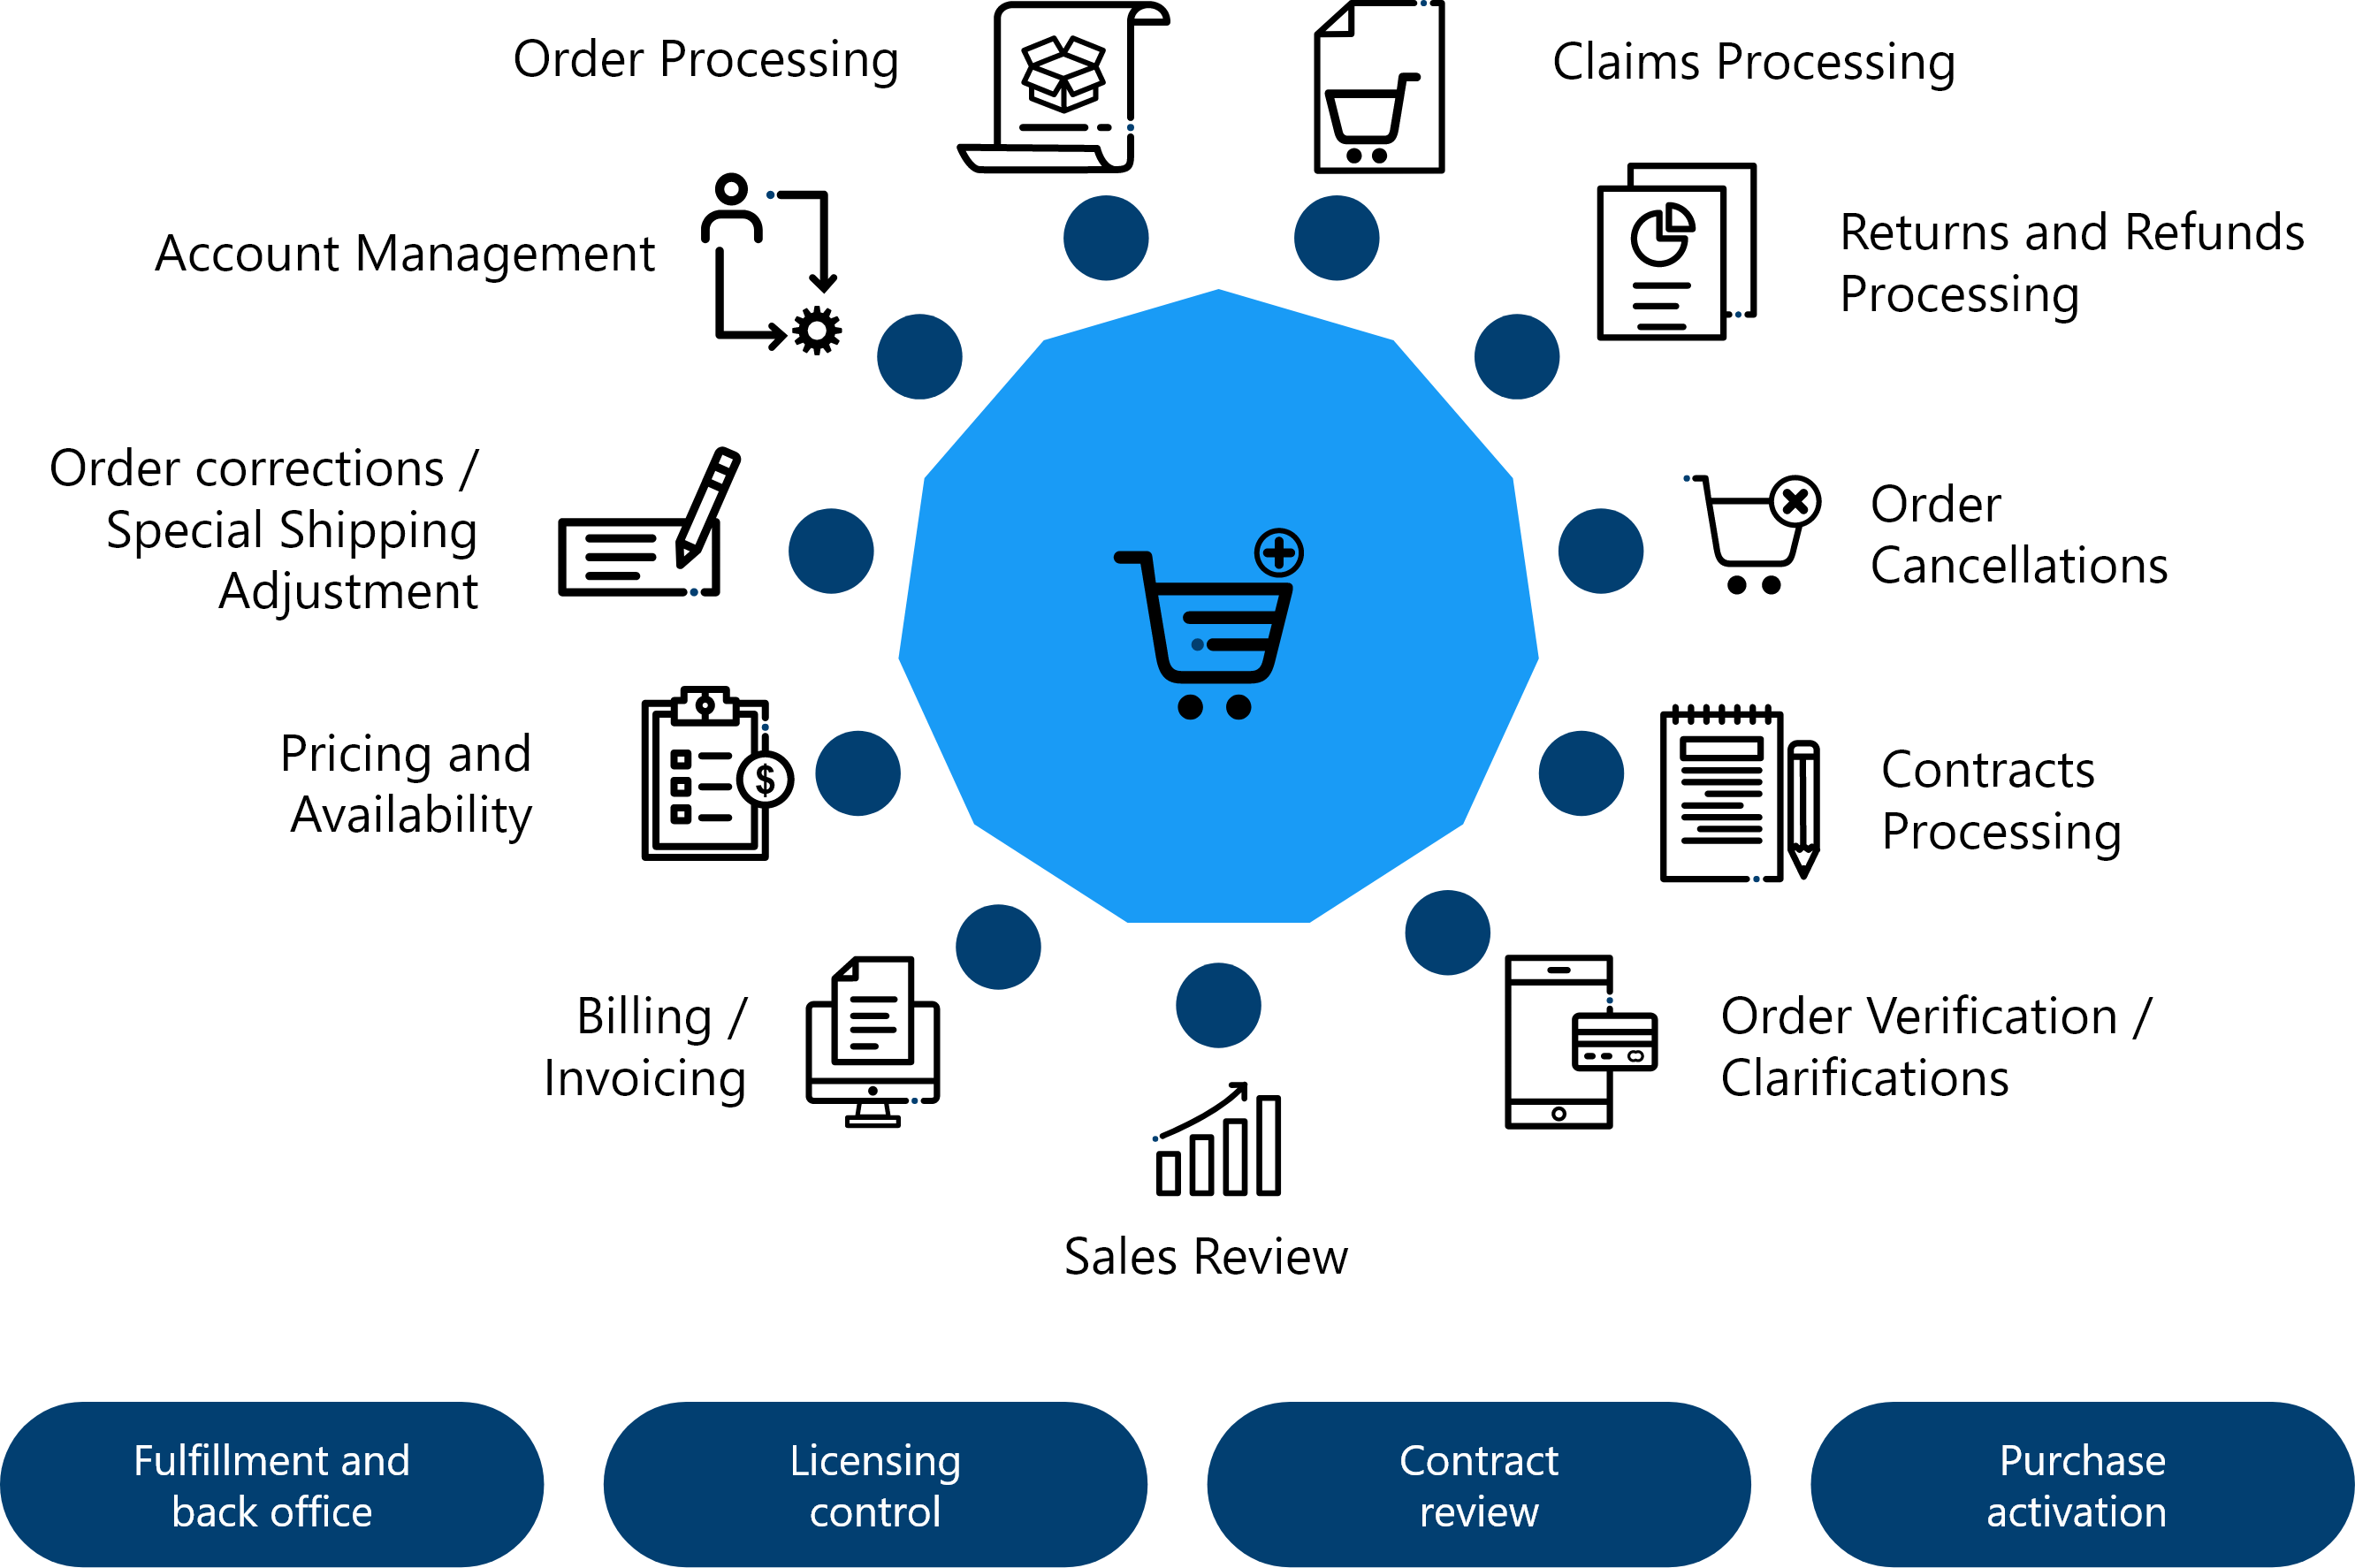 Omni channel support fulfillment and back office